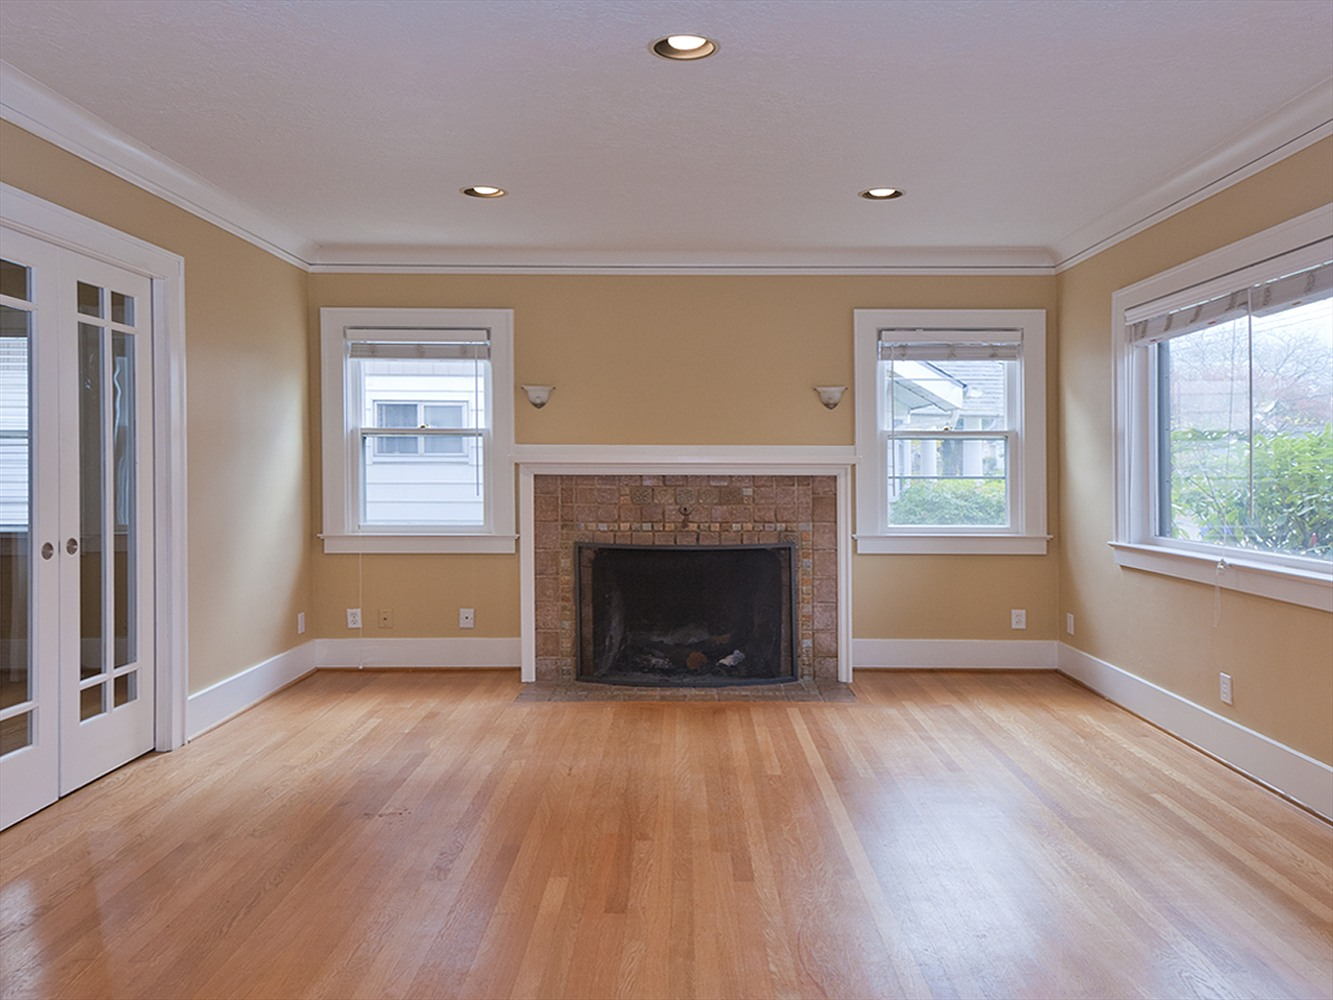 Wall Colors With Light Oak Floors : Oak Flooring Wall Colors - Alyssamyers